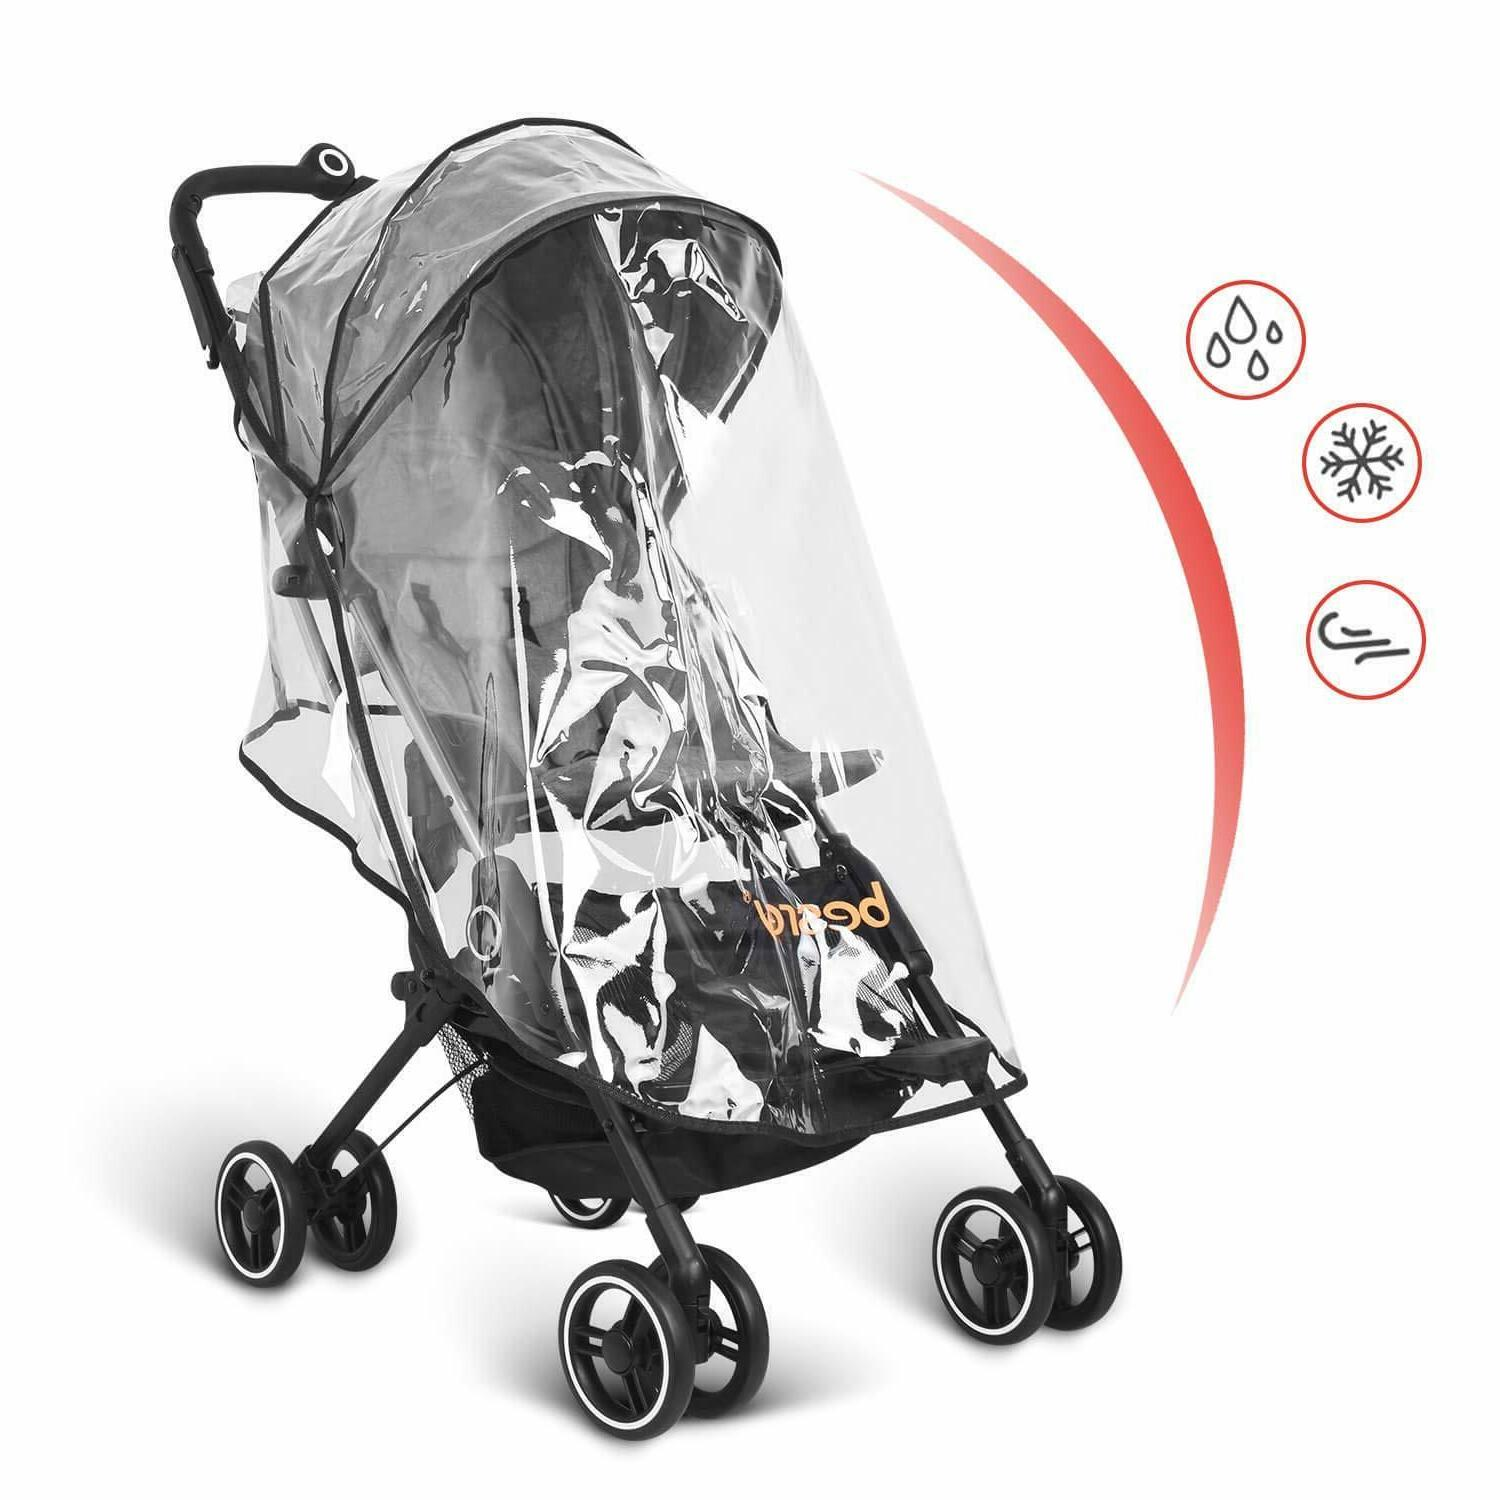 Besrey Airplane Stroller One Step for Opening w/